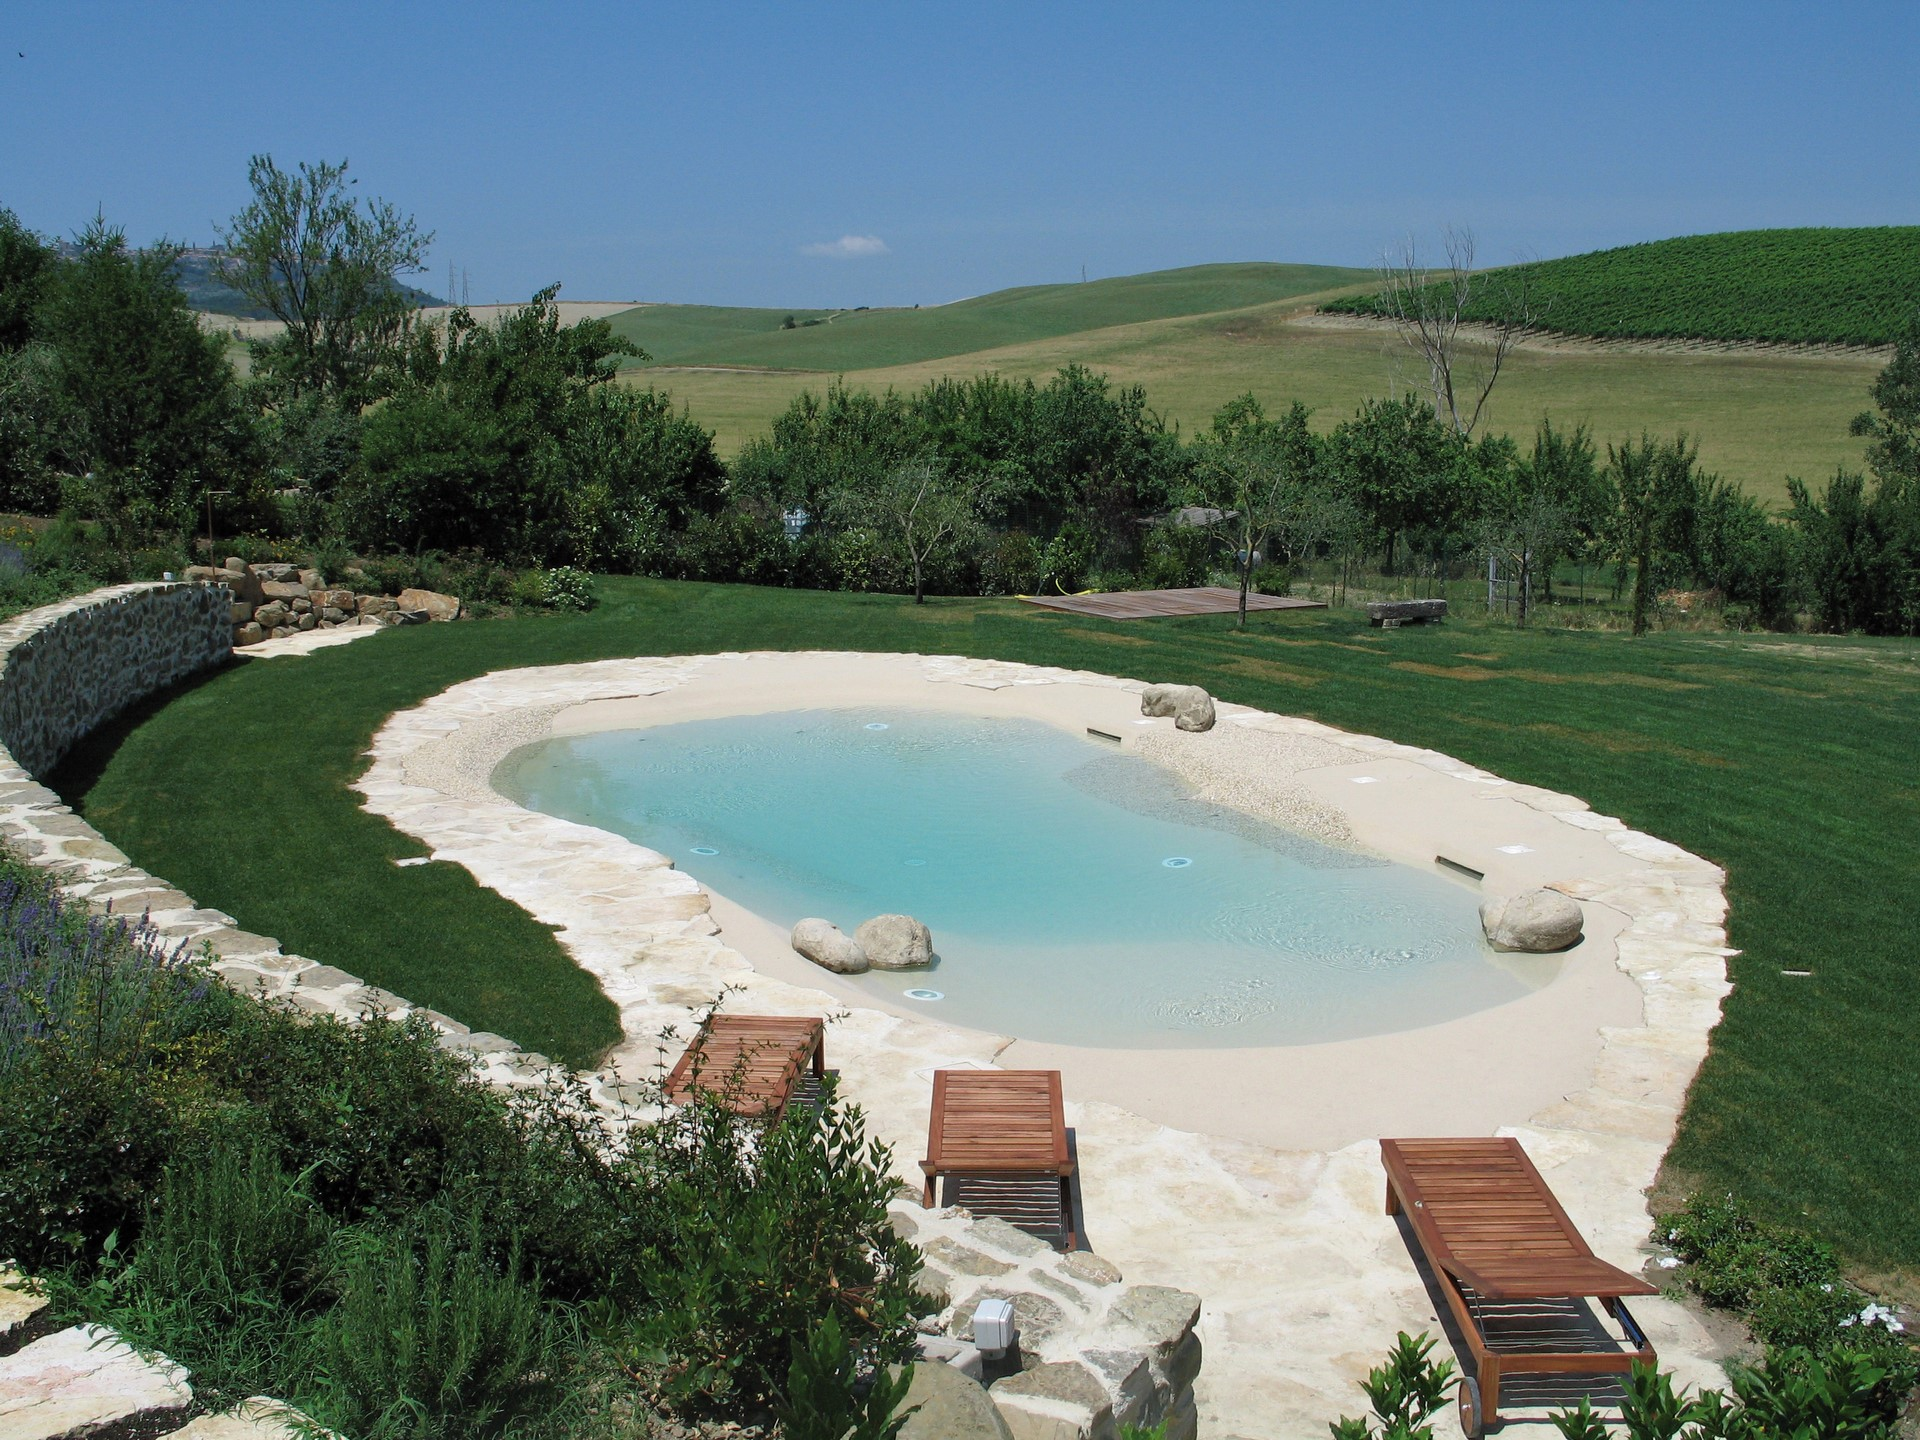 Bio Pool Selber Bauen Gallery Piscine Private Piscine Bio Design